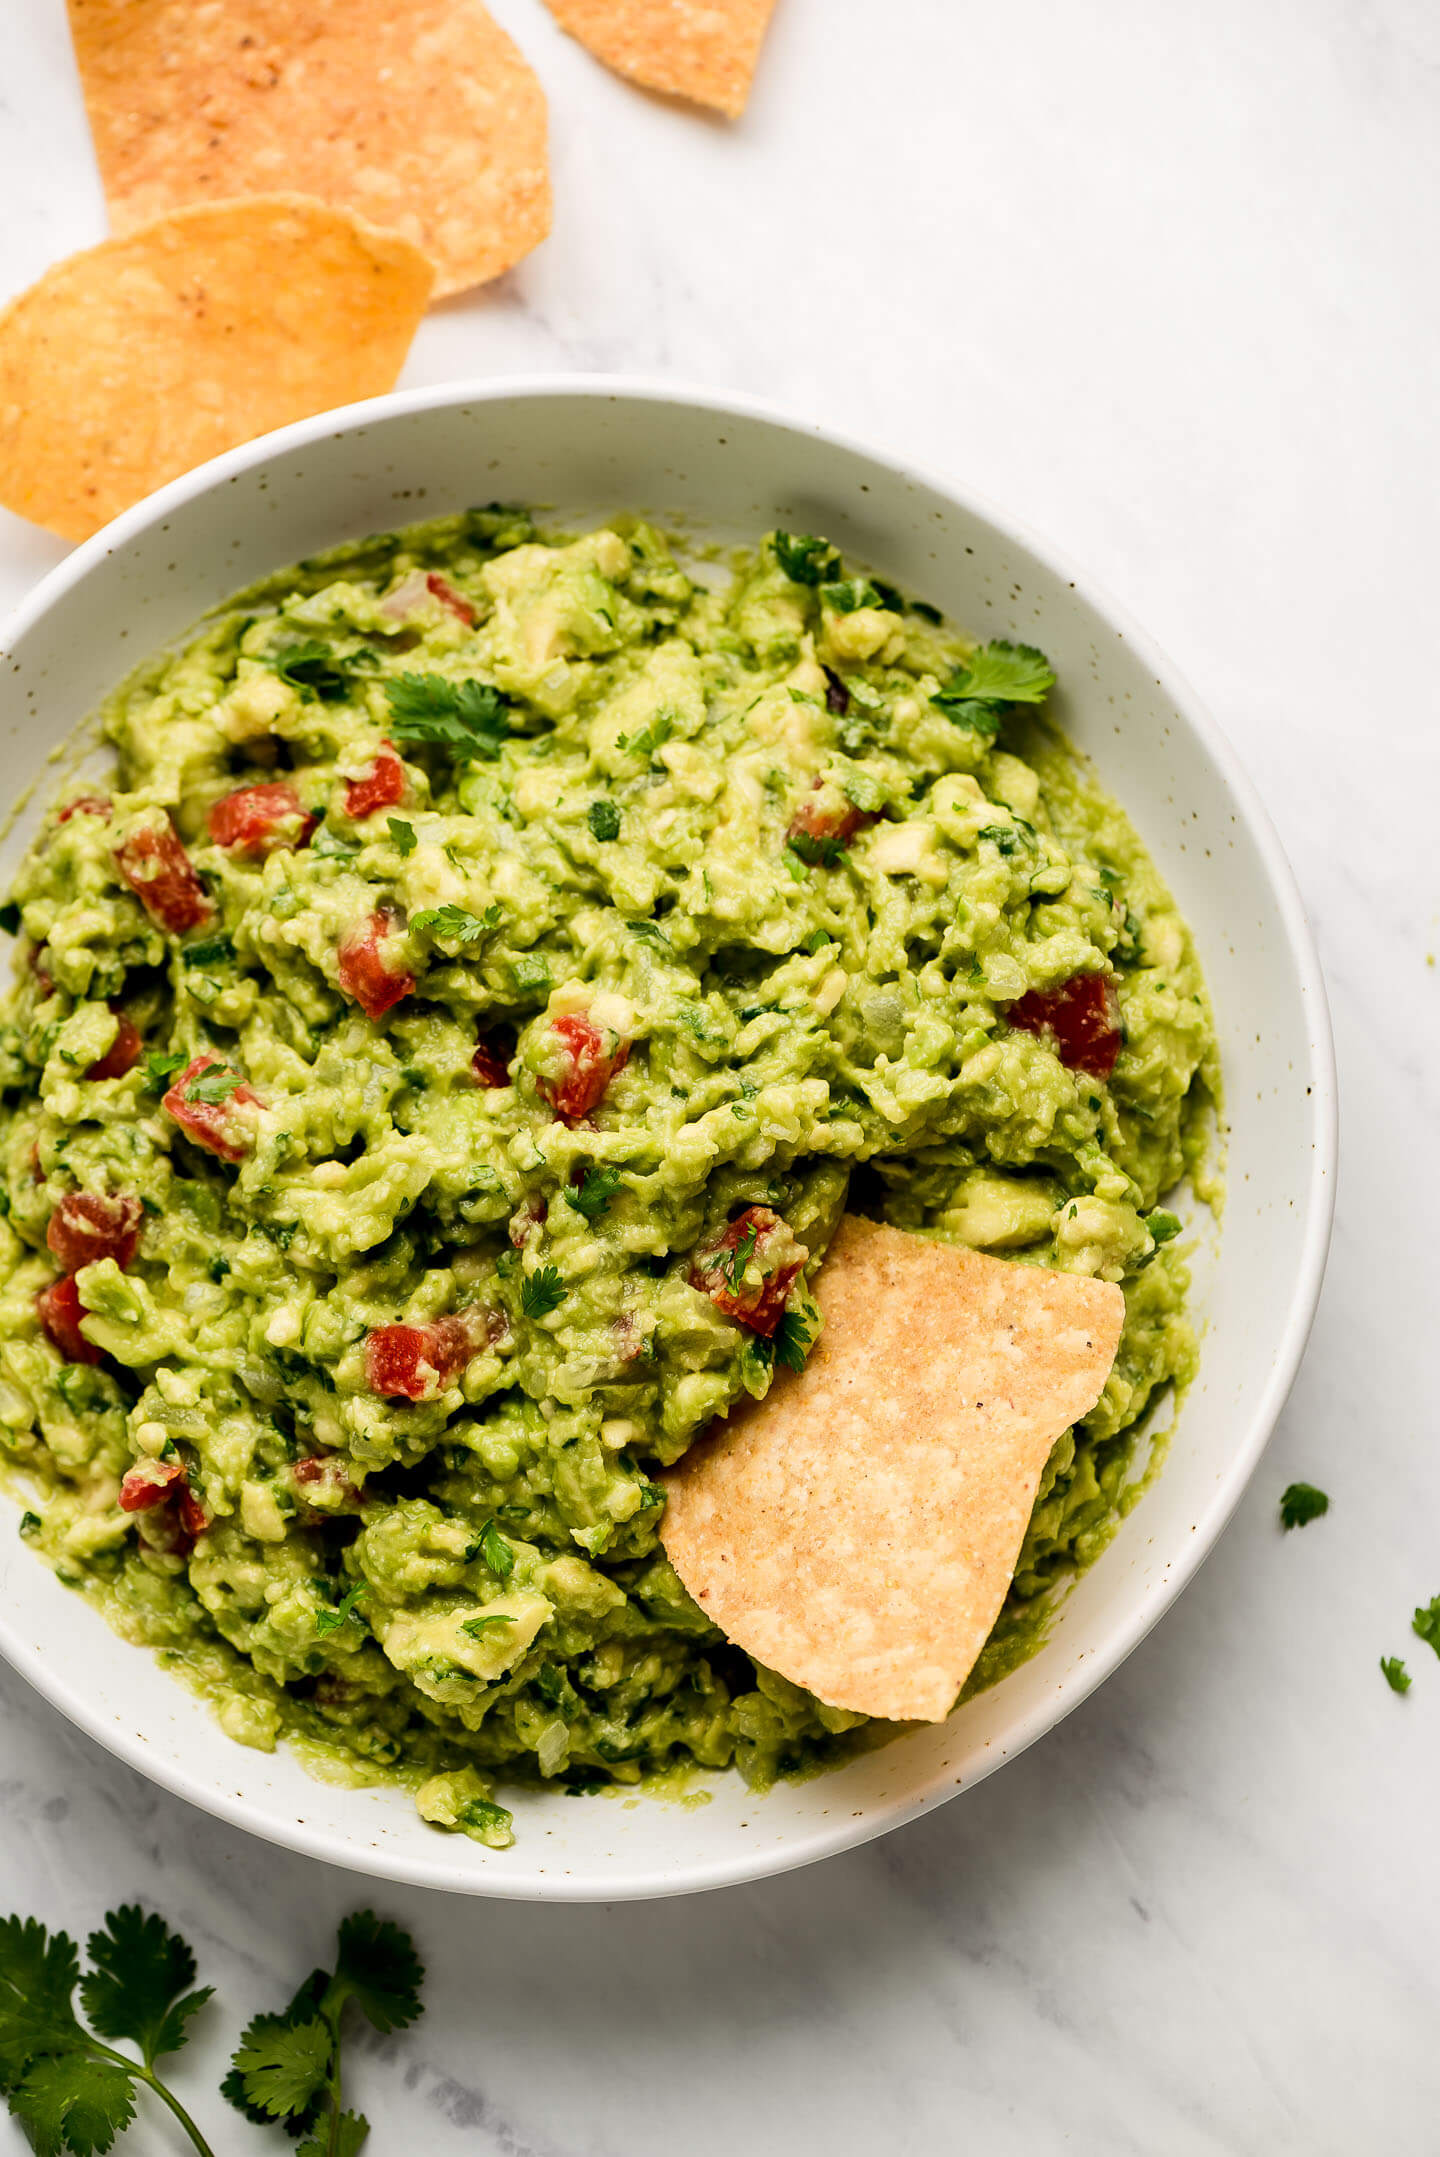 Top view of a large bowl of Homemade Guacamole with a chip in the side.